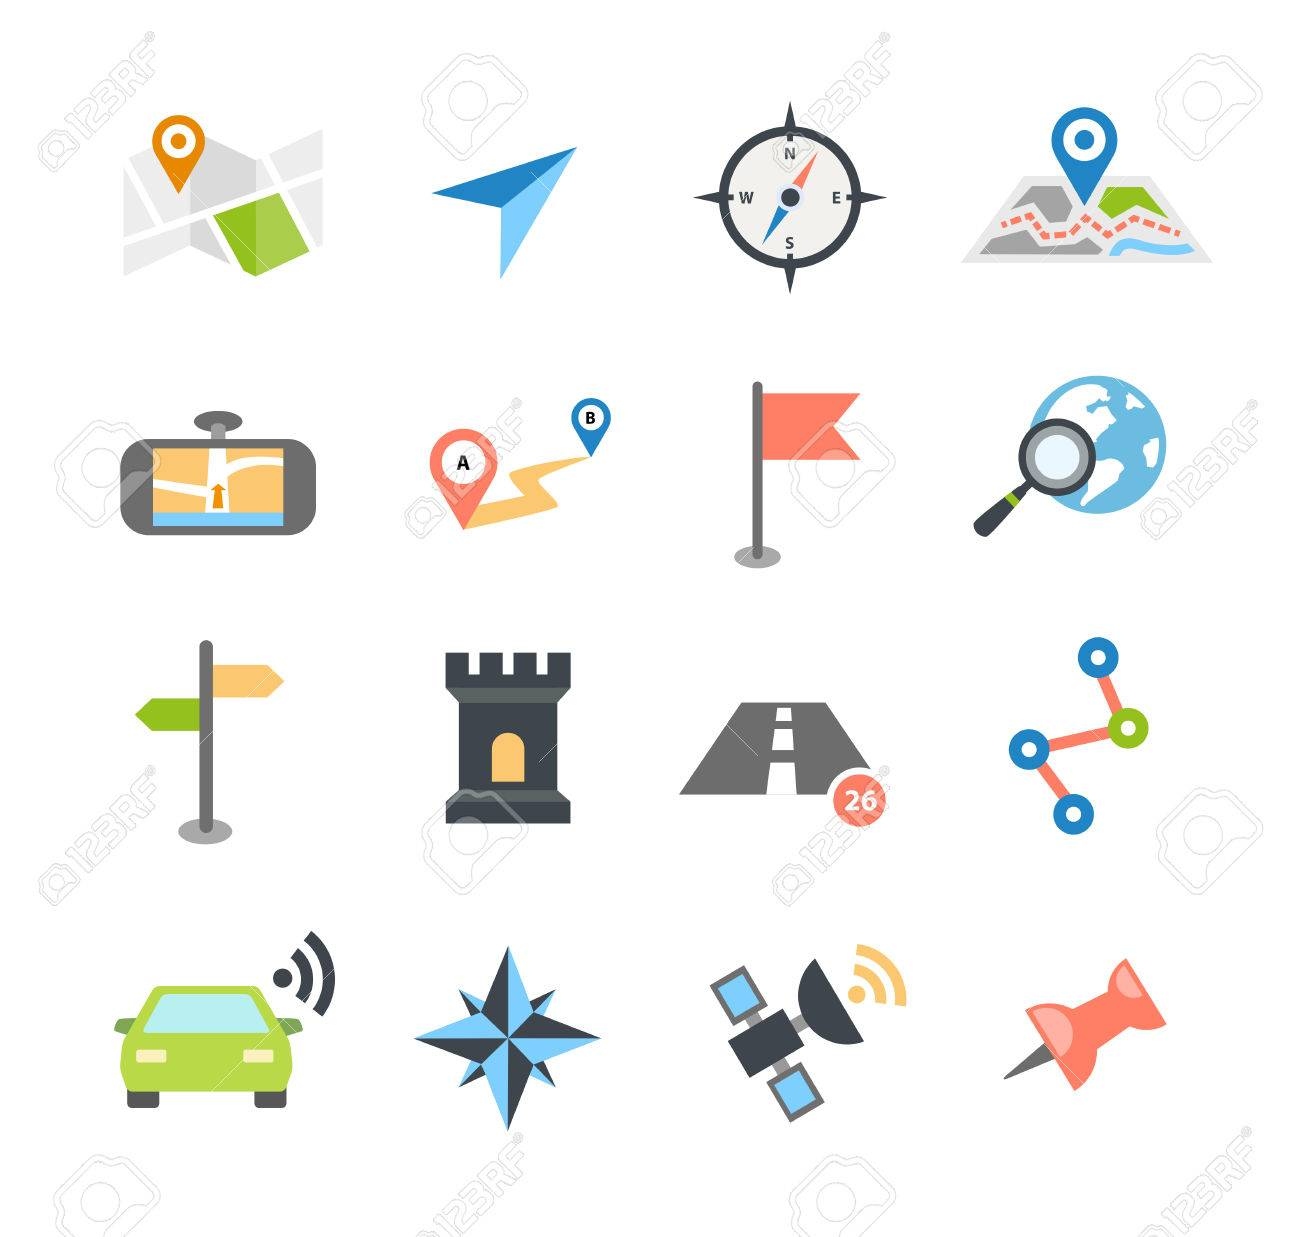 Collection of navigation icons - arrows, pointers and navigational equipment. Can be used for maps, plans, mobile apps. Usable for web or print. - 50454828